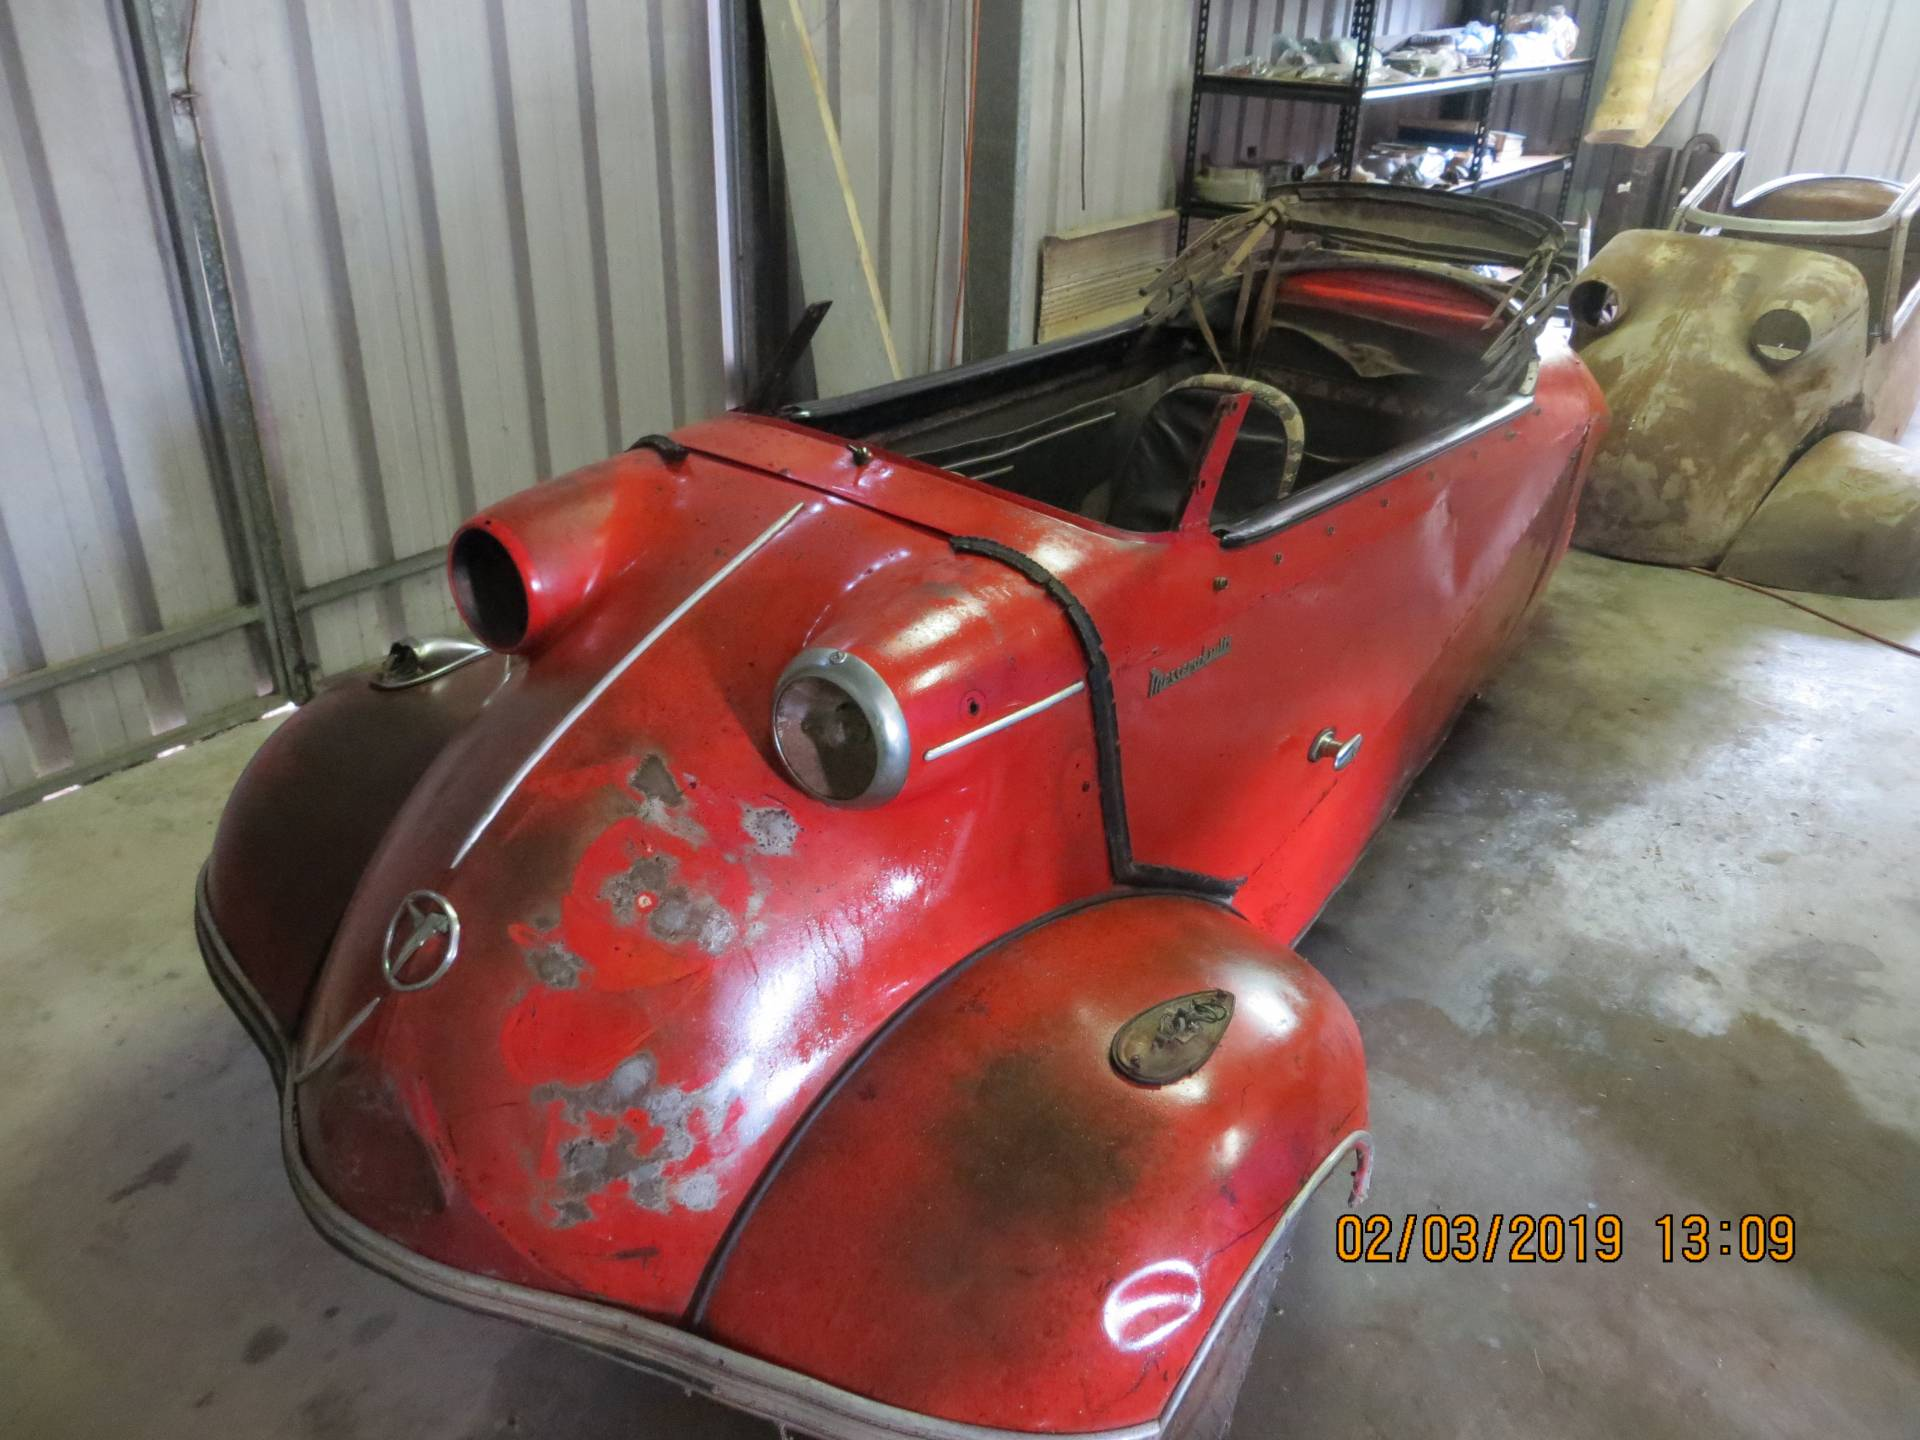 Messerschmitt / FMR KR 201 - KR201 & KR200 For restoration have never been restored